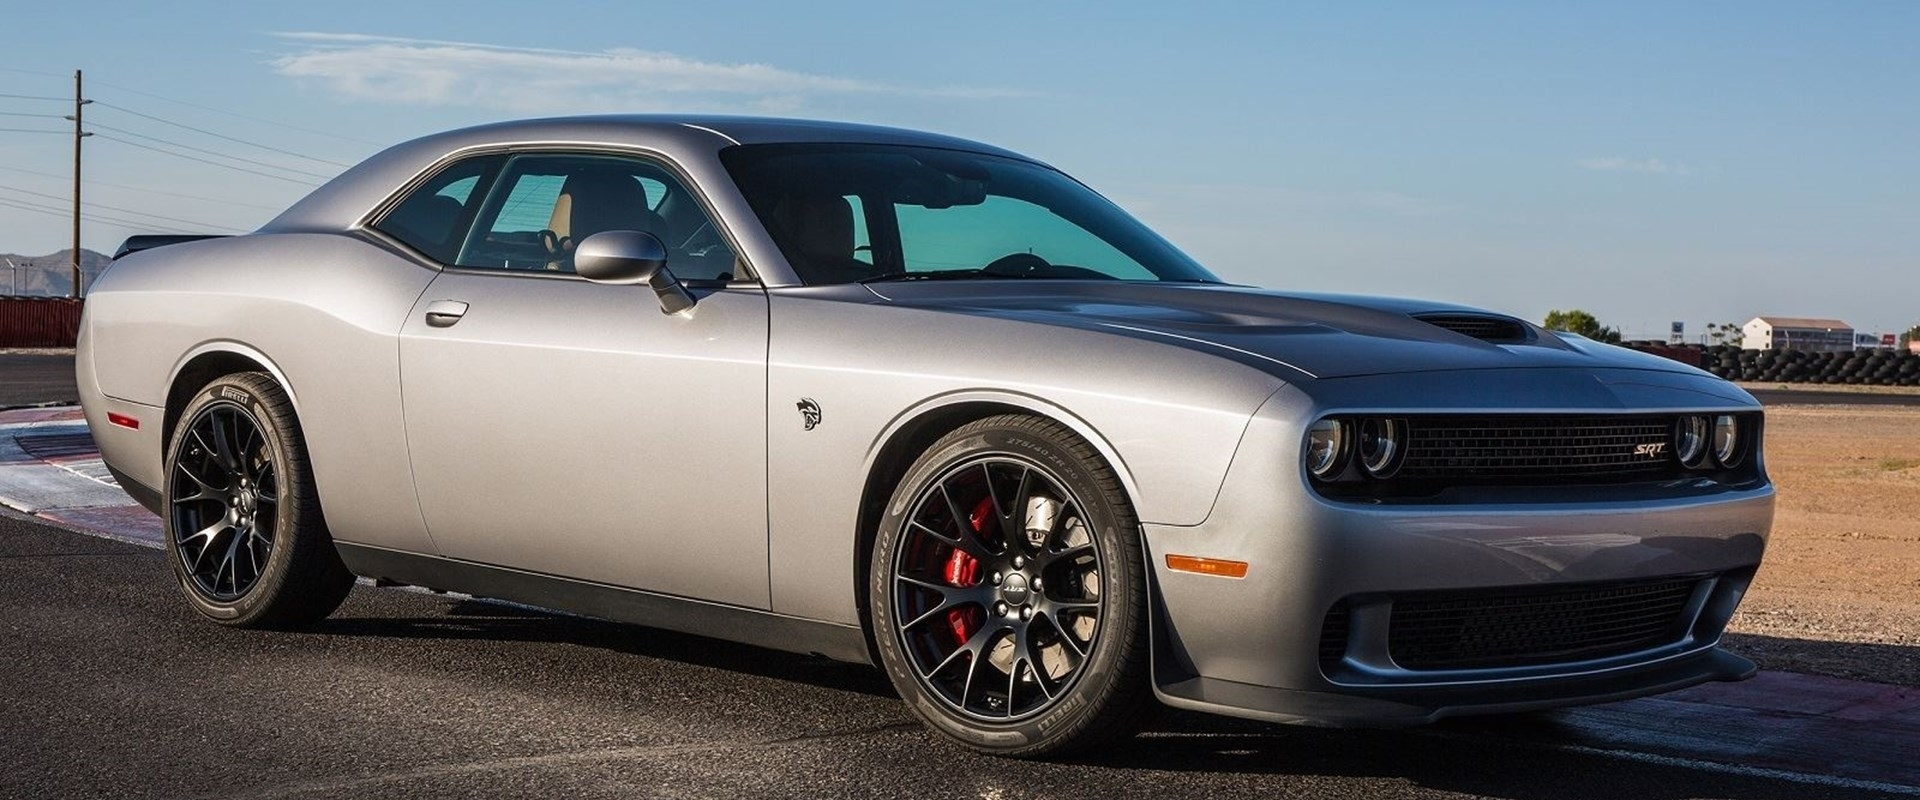 is the dodge challenger the last true american muscle car? - carbuzz